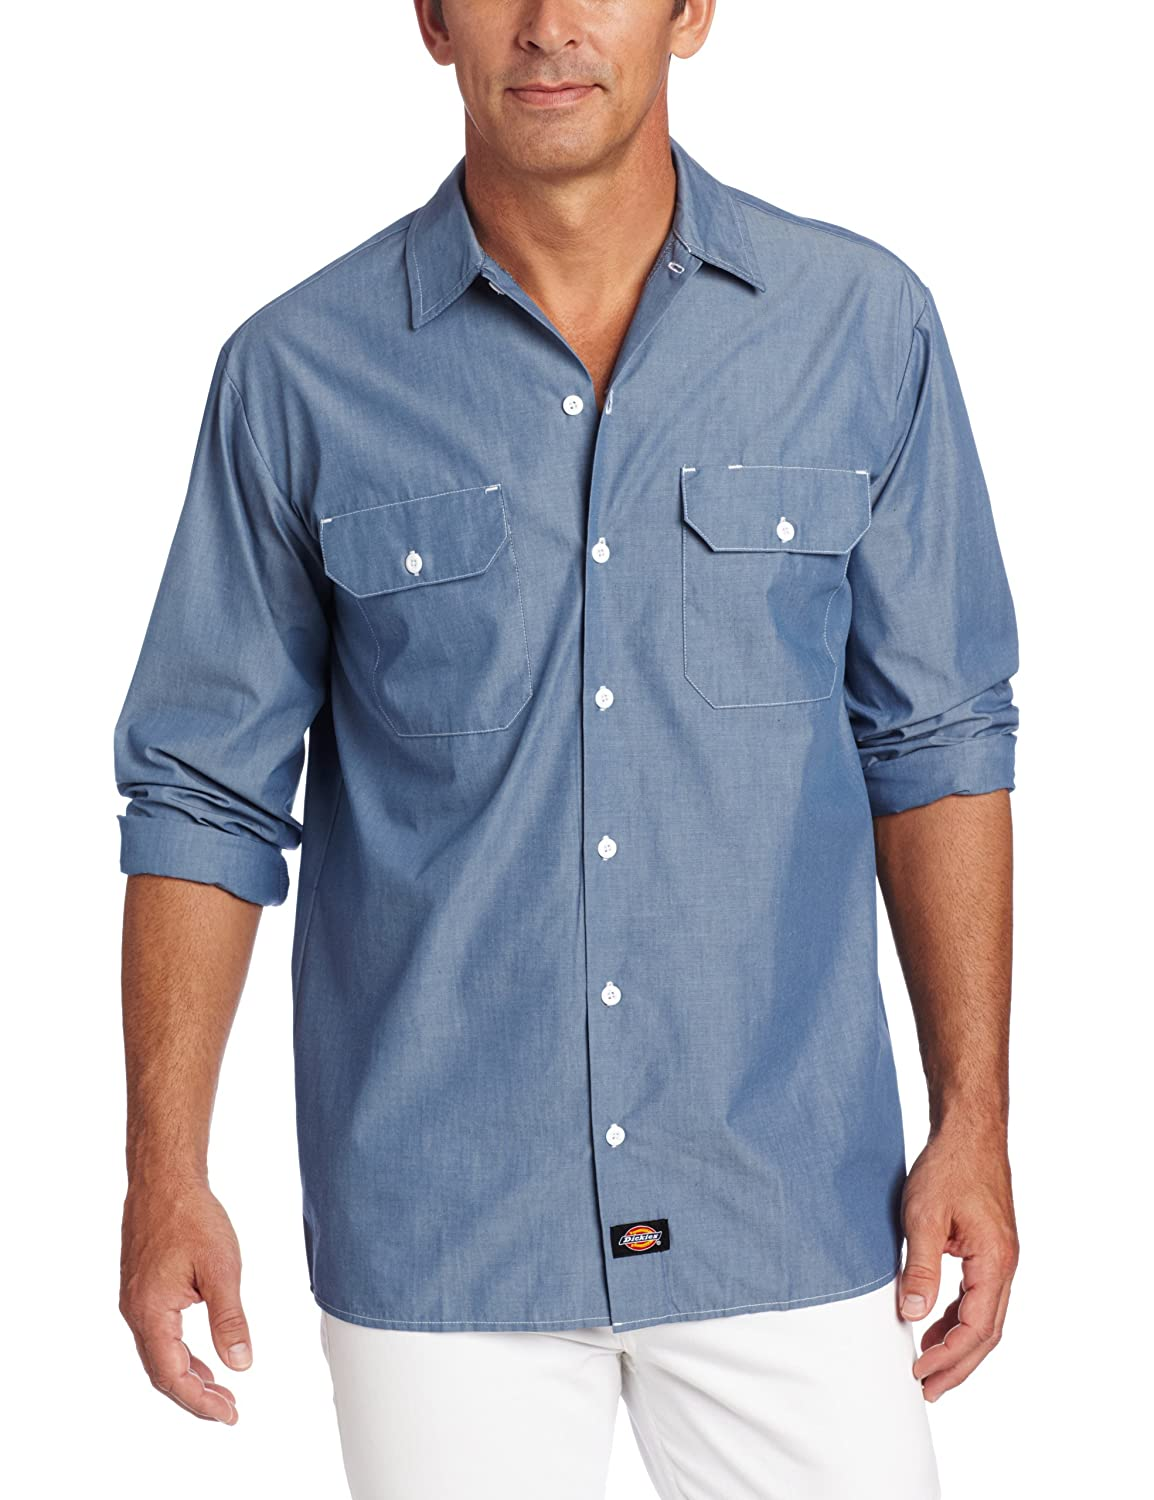 Chambray shirt images galleries with for Chambray 7 s